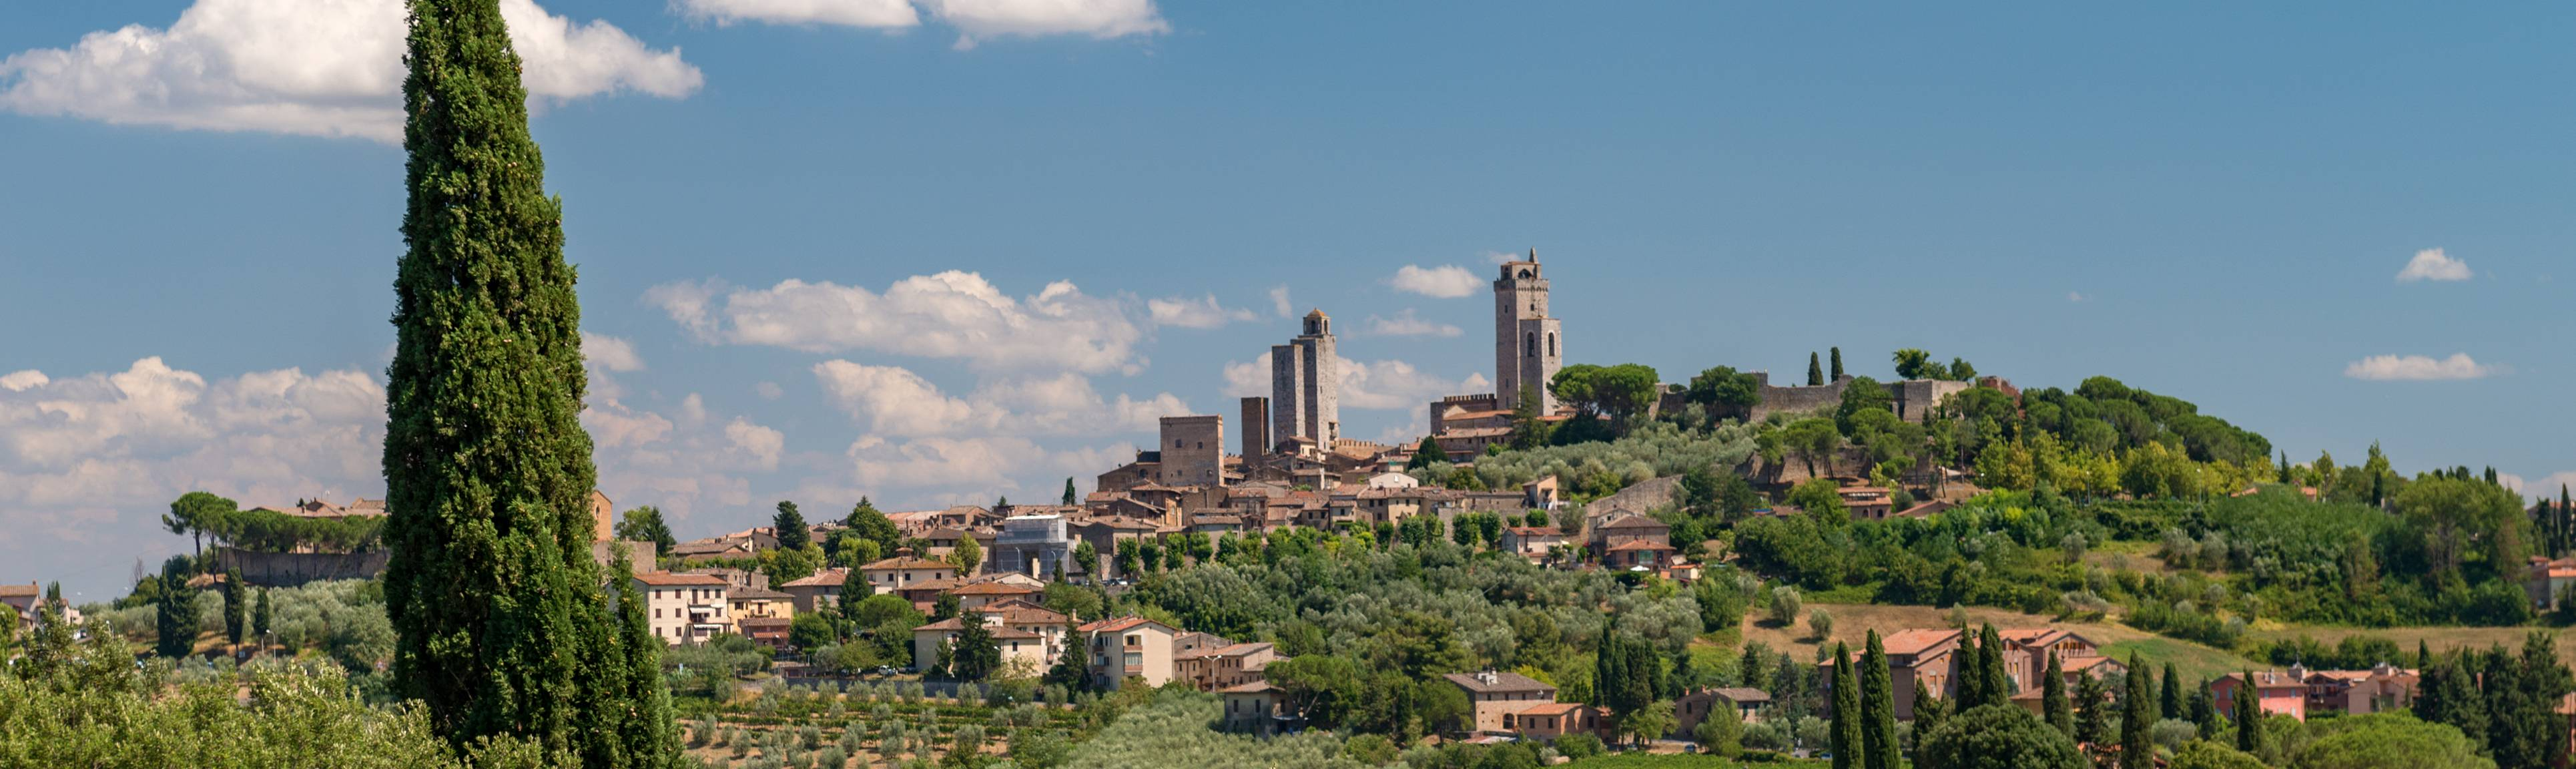 Distant view of San Gimignano in the Chianti Region